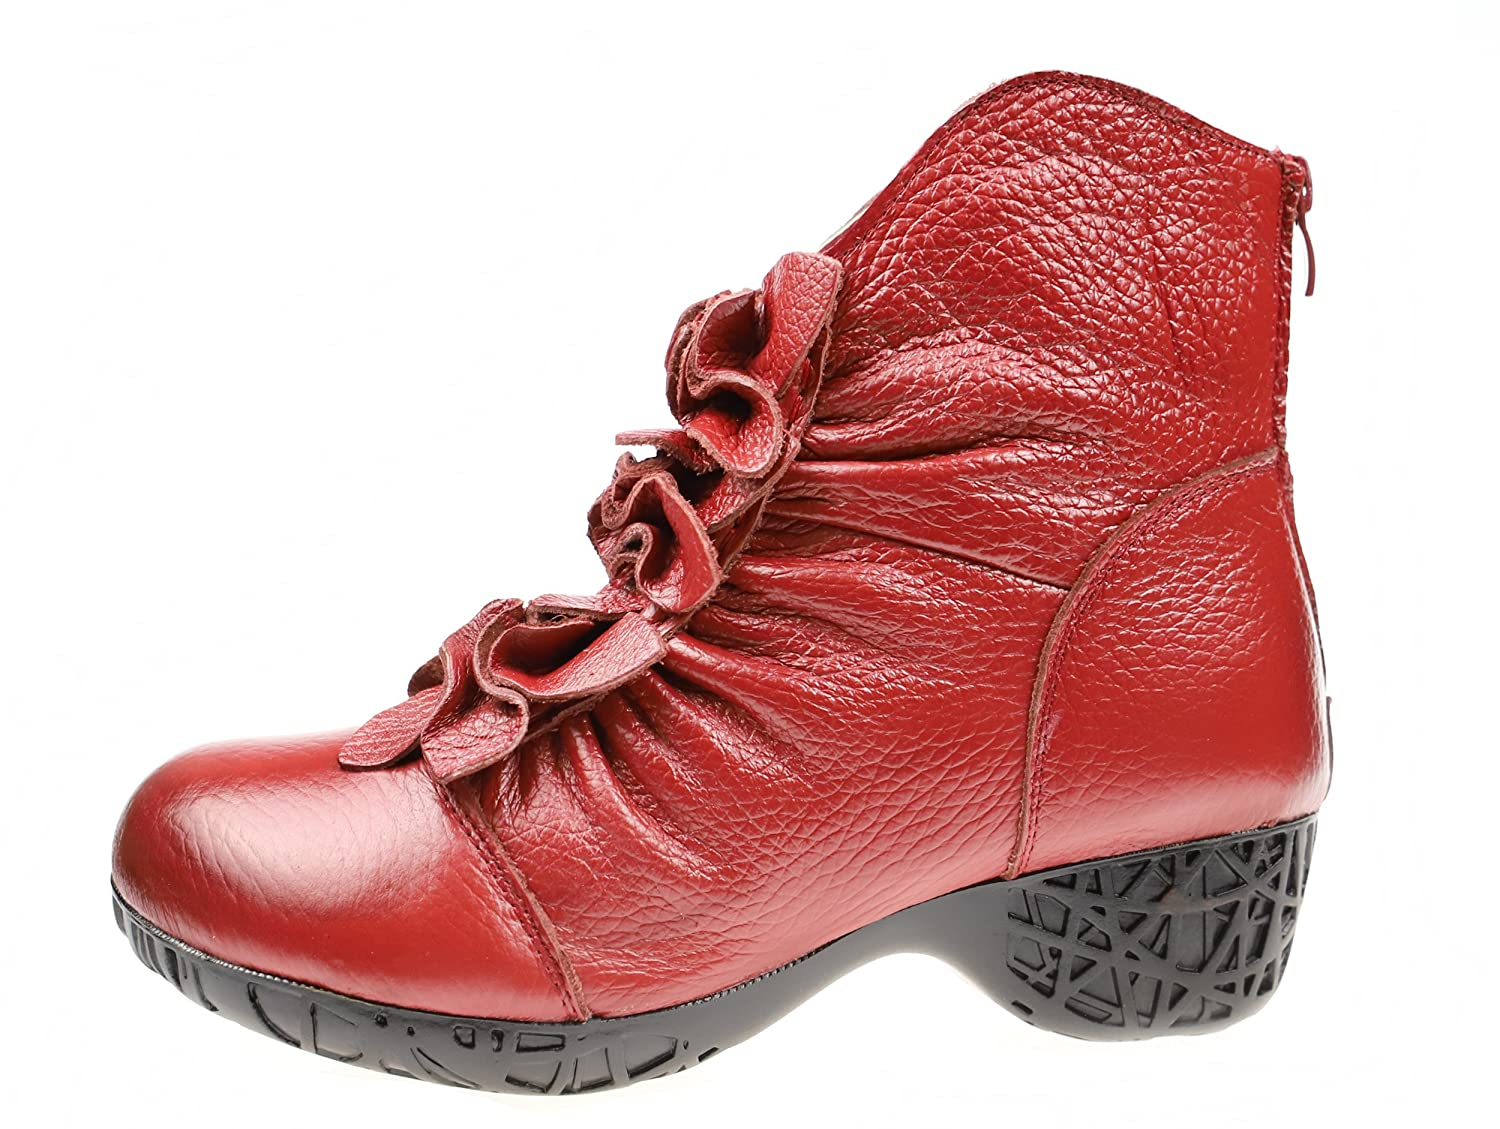 Bigwanbig Women Fashionable Casual Retro Lace Leather Round Toe Warm Heel Ankle Boots (and Fur-Lined)